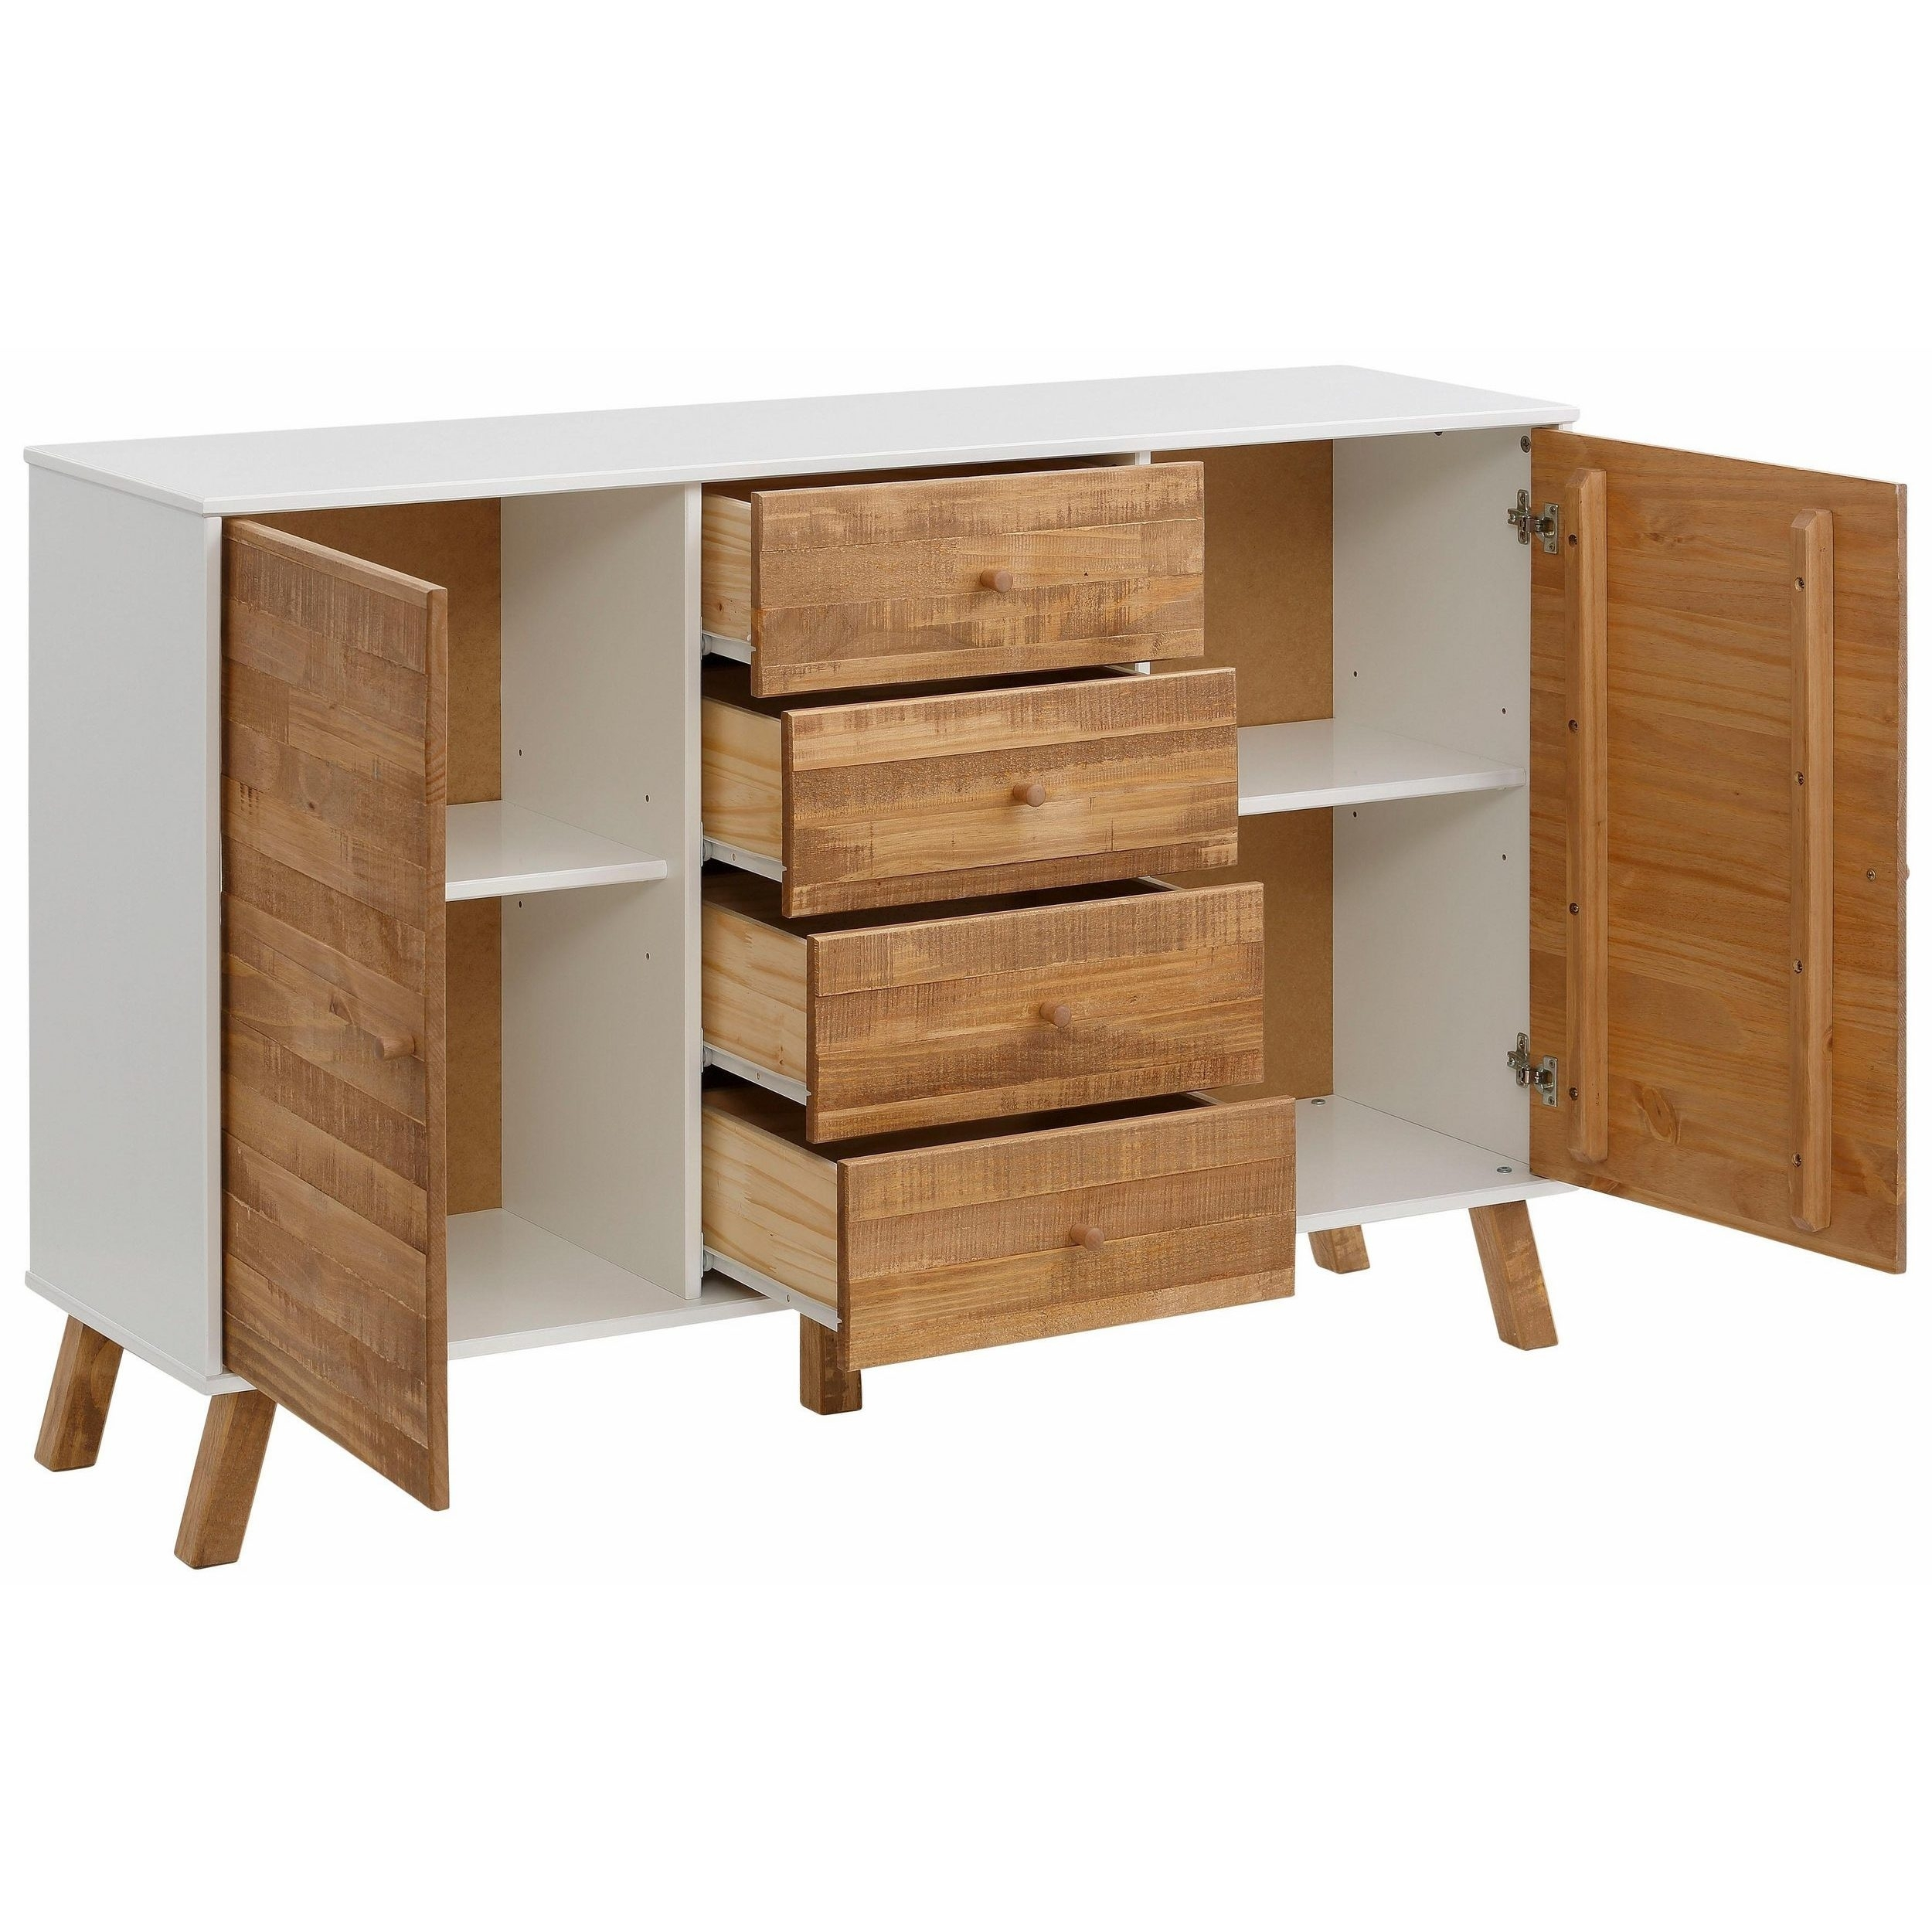 Shop Rafael 2 Door 4 Drawer Sideboard, Solid Pine, Off White within Natural South Pine Sideboards (Image 21 of 30)